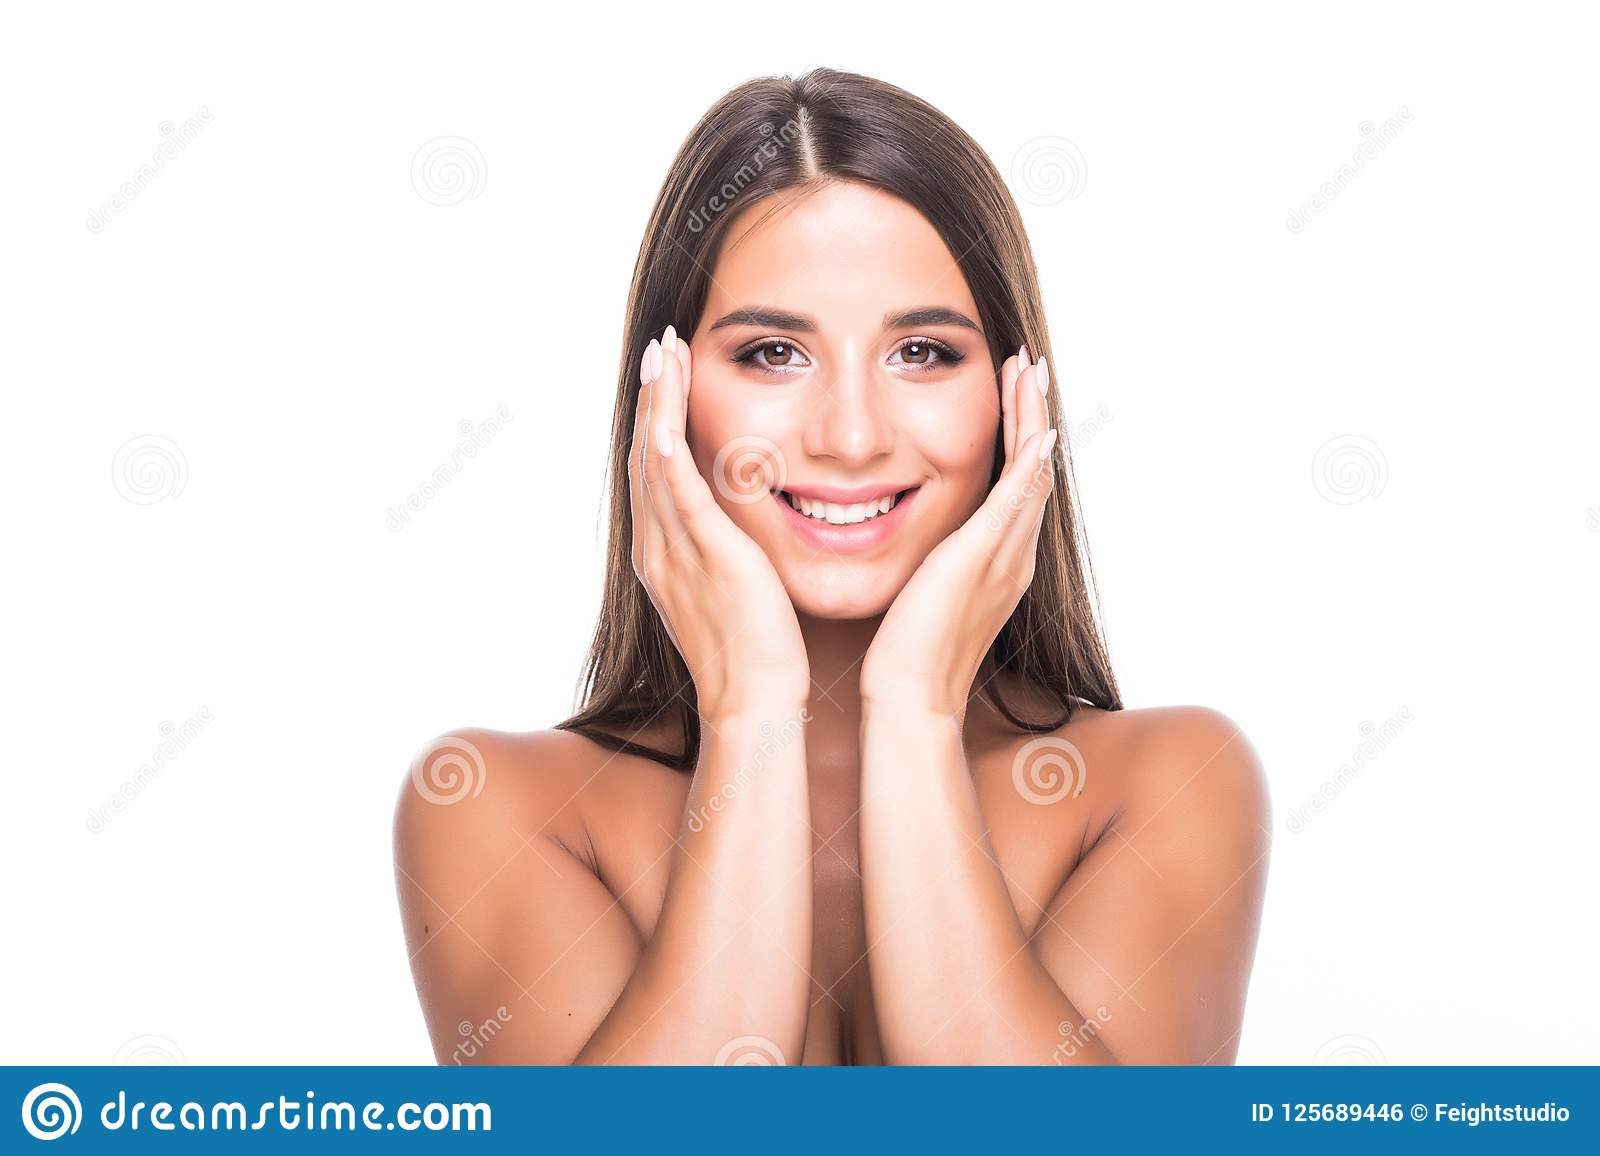 Happy beautiful girl holding her cheeks with a laugh looking to the side. Expressive facial expressions. Cosmetology and Spa